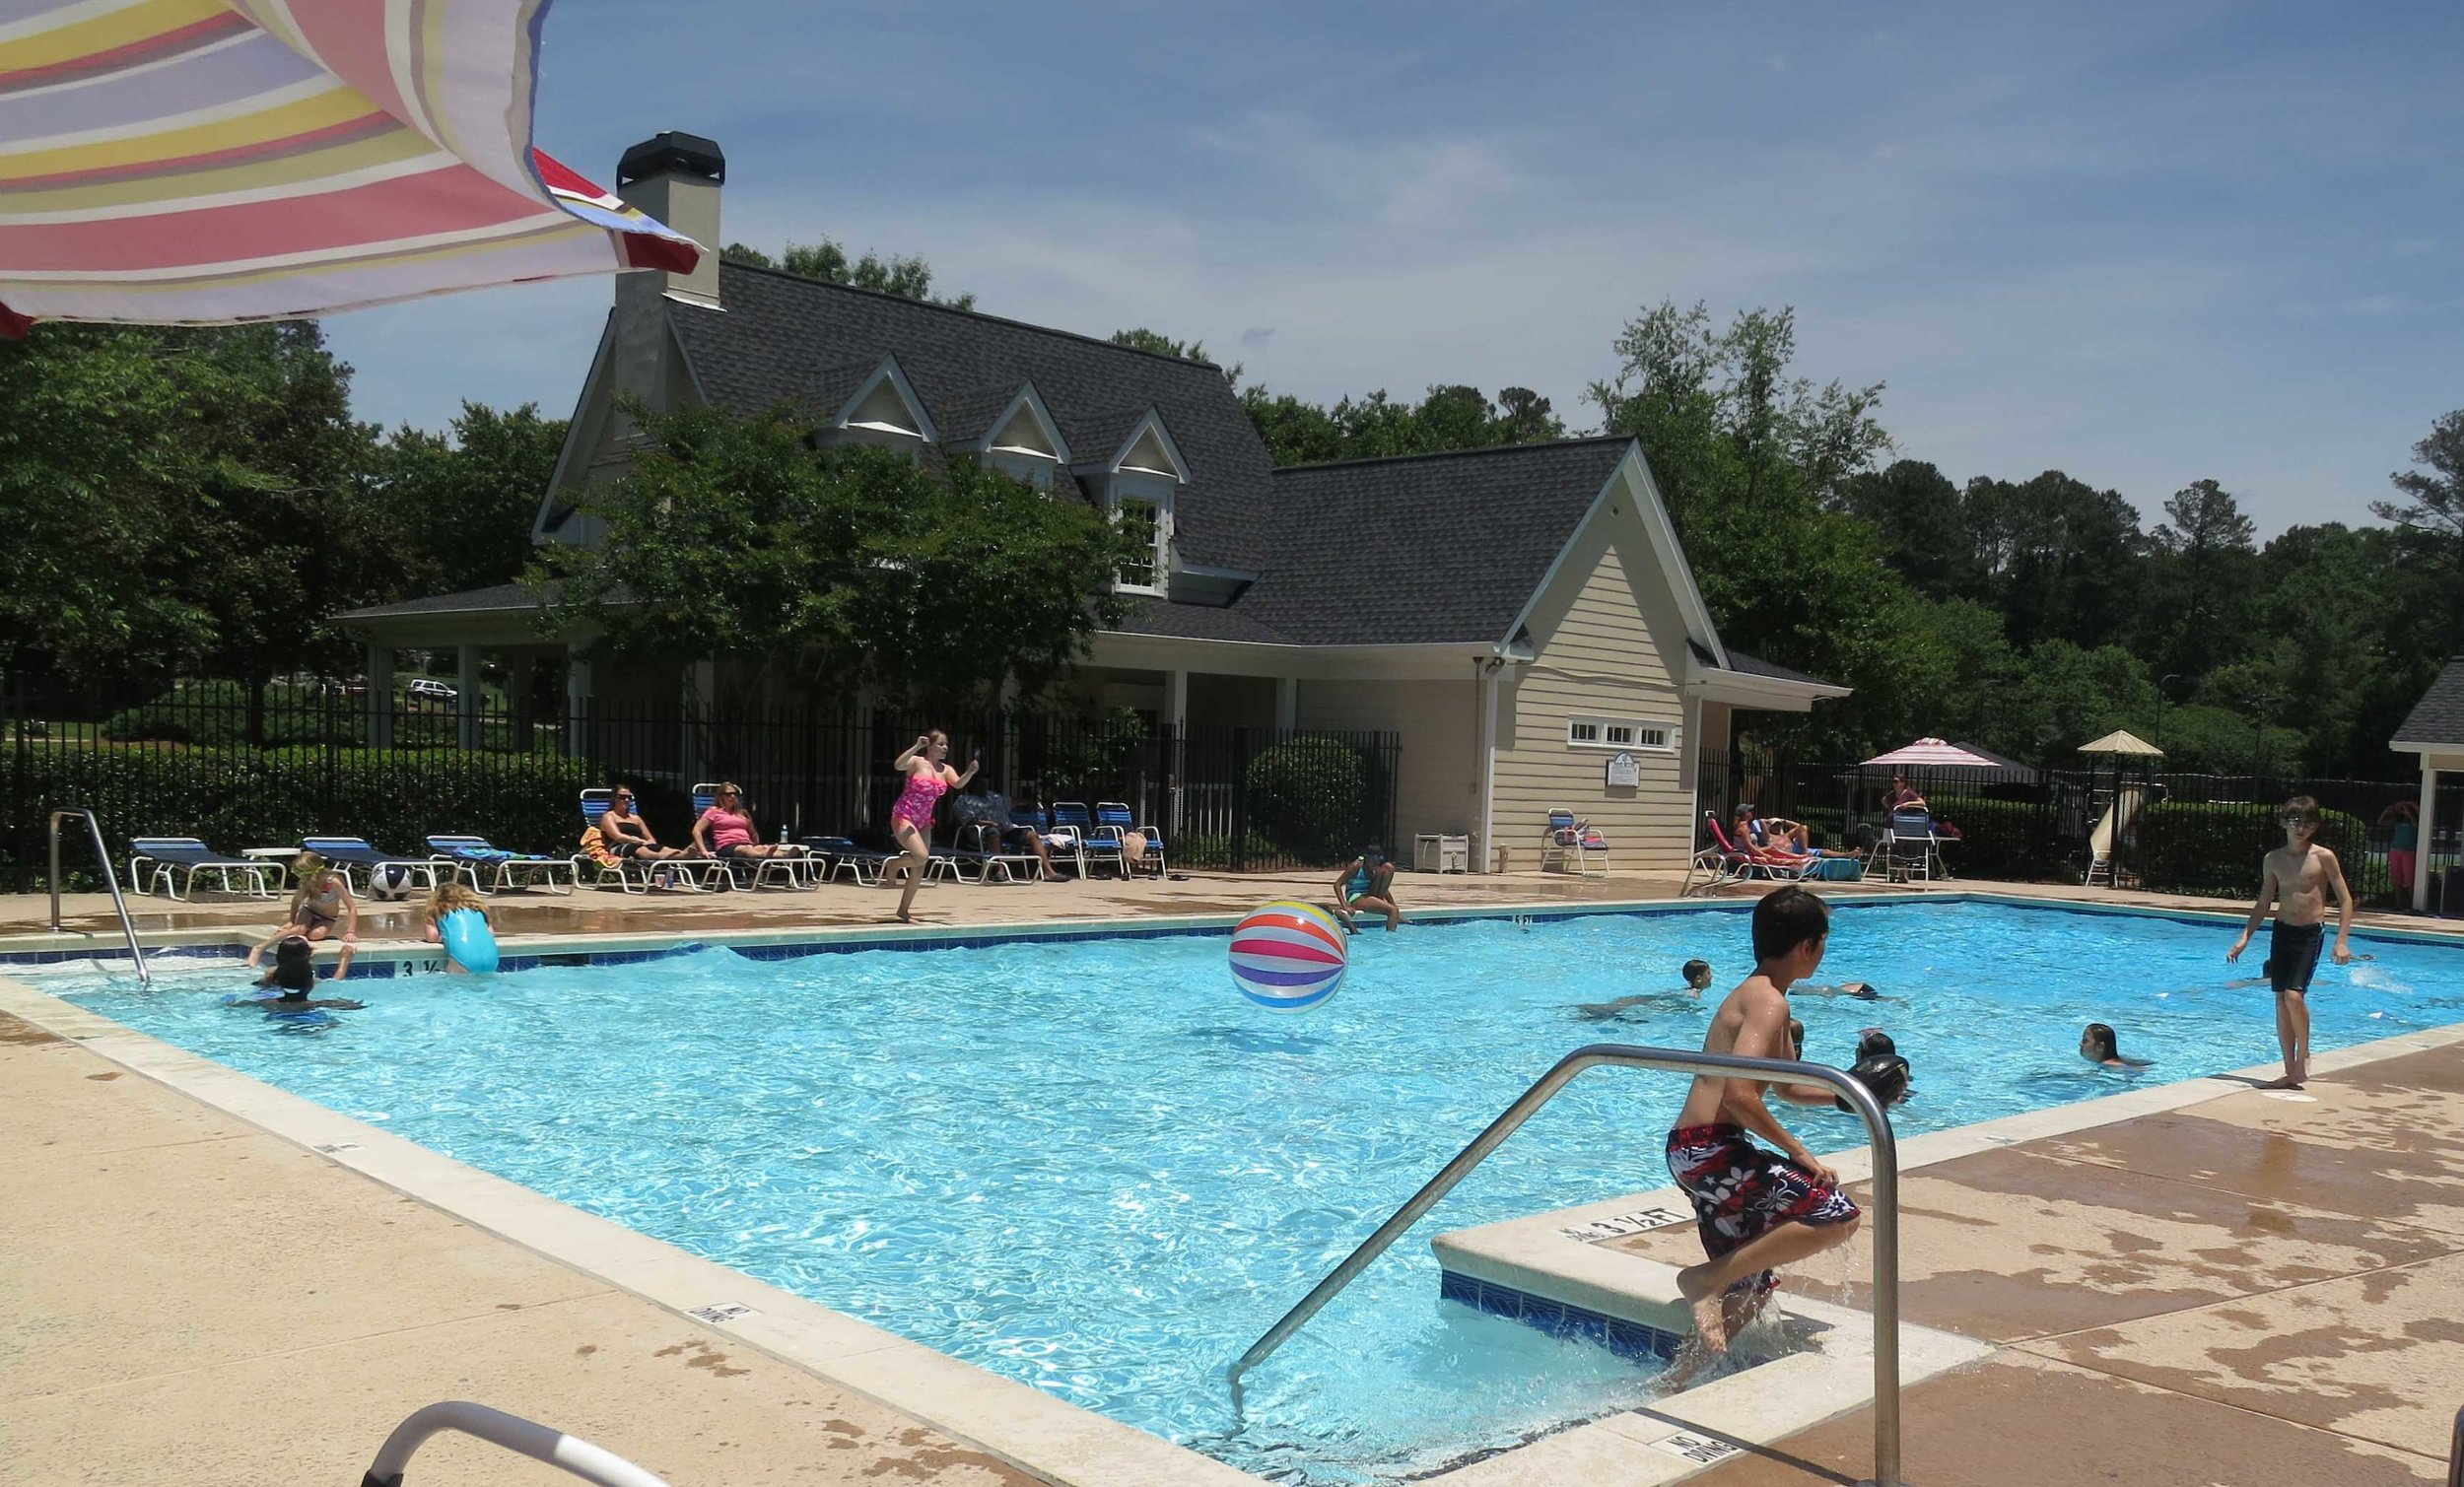 - HAMPTON GLEN RESIDENT RENTAL FEES:$50, $25 for Non-Profit.Free for Scouts with local Scout and parent.$100 Damage/Cleaning DepositNON-RESIDENT RENTAL FEES:$75 for Clubhouse ONLY plus $100 for deposit.NO Pool or Cabana Usage.GAZEBO, POOL & CABANA:Reserve for $25 (for parties), or share for free.We do not rent the pool, but can accommodate up to 10 guests without notification.More than 10 guests - up to 20: contact Mariah Case 540-810-2093Click here for Reservation GuidelinesCLUB HOUSE RESERVATIONS:Please call/text: Mariah Case 540-810-2093Drop off checks and pick up key at 1439 Fenwick Drive.Secondary contact: Denise Pierce 770-630-8104